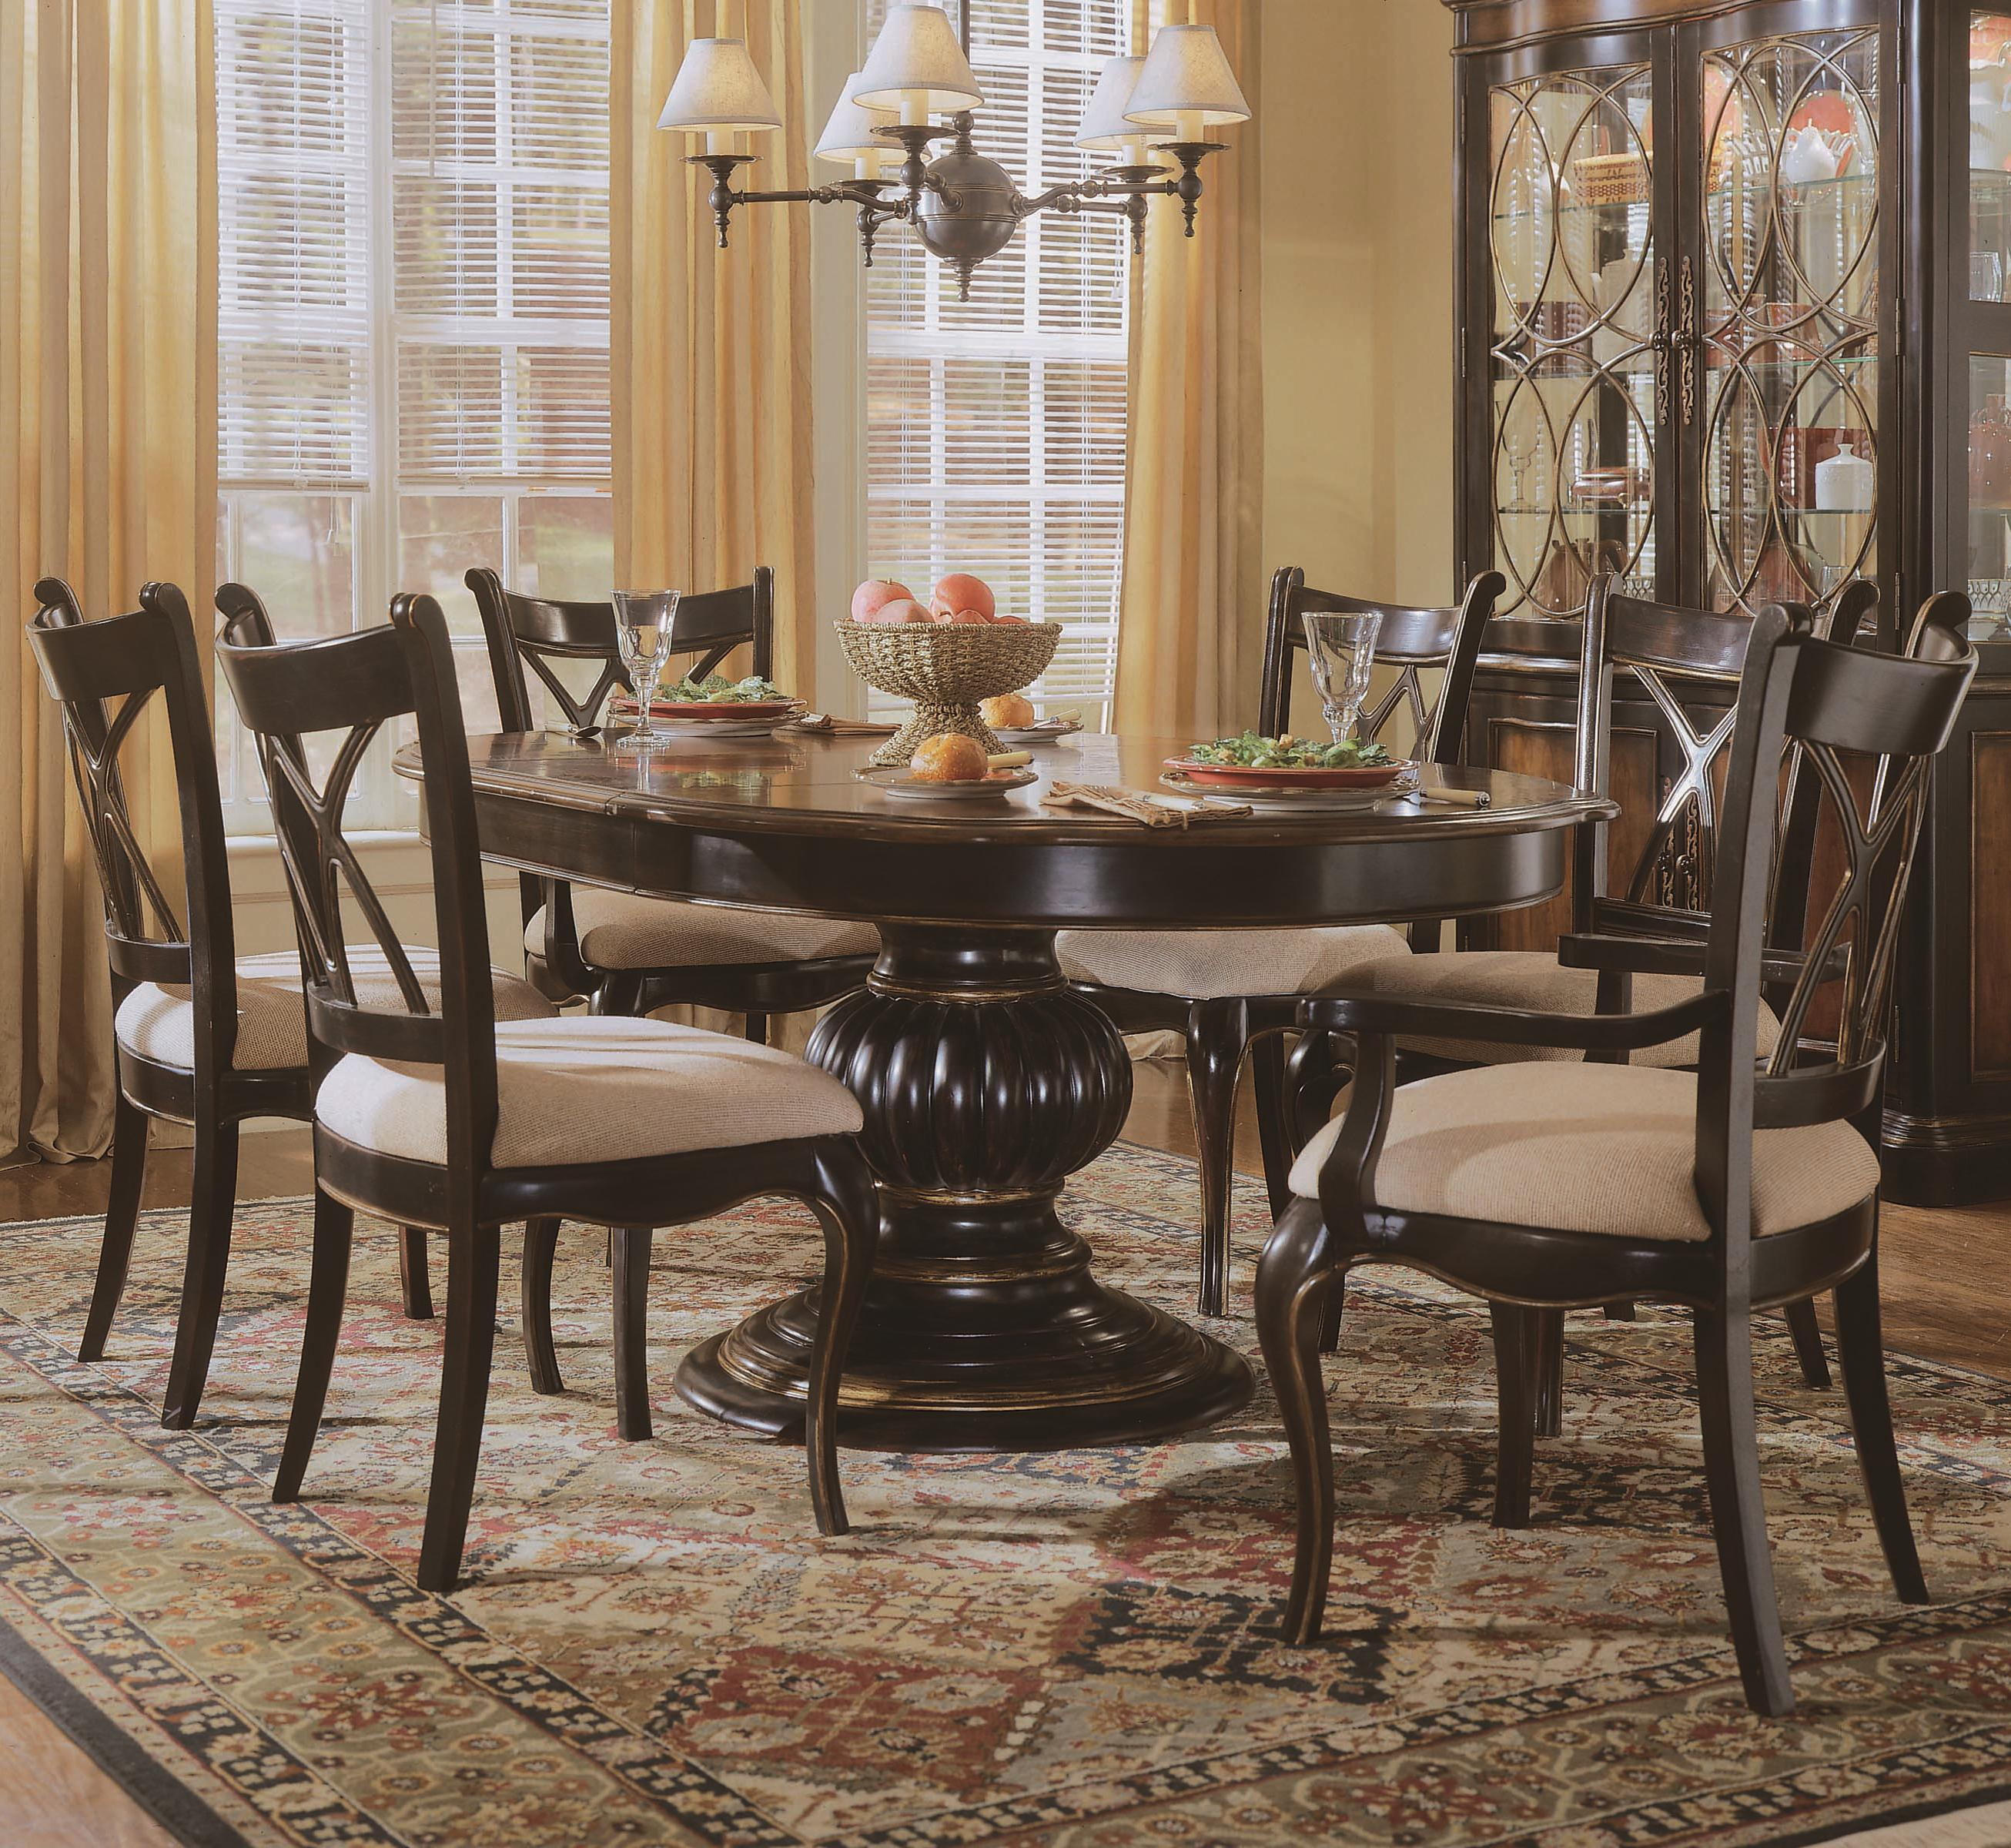 Hooker Furniture Preston Ridge Table and Chair Set - Item Number: 864-75-201+2x400+4x410